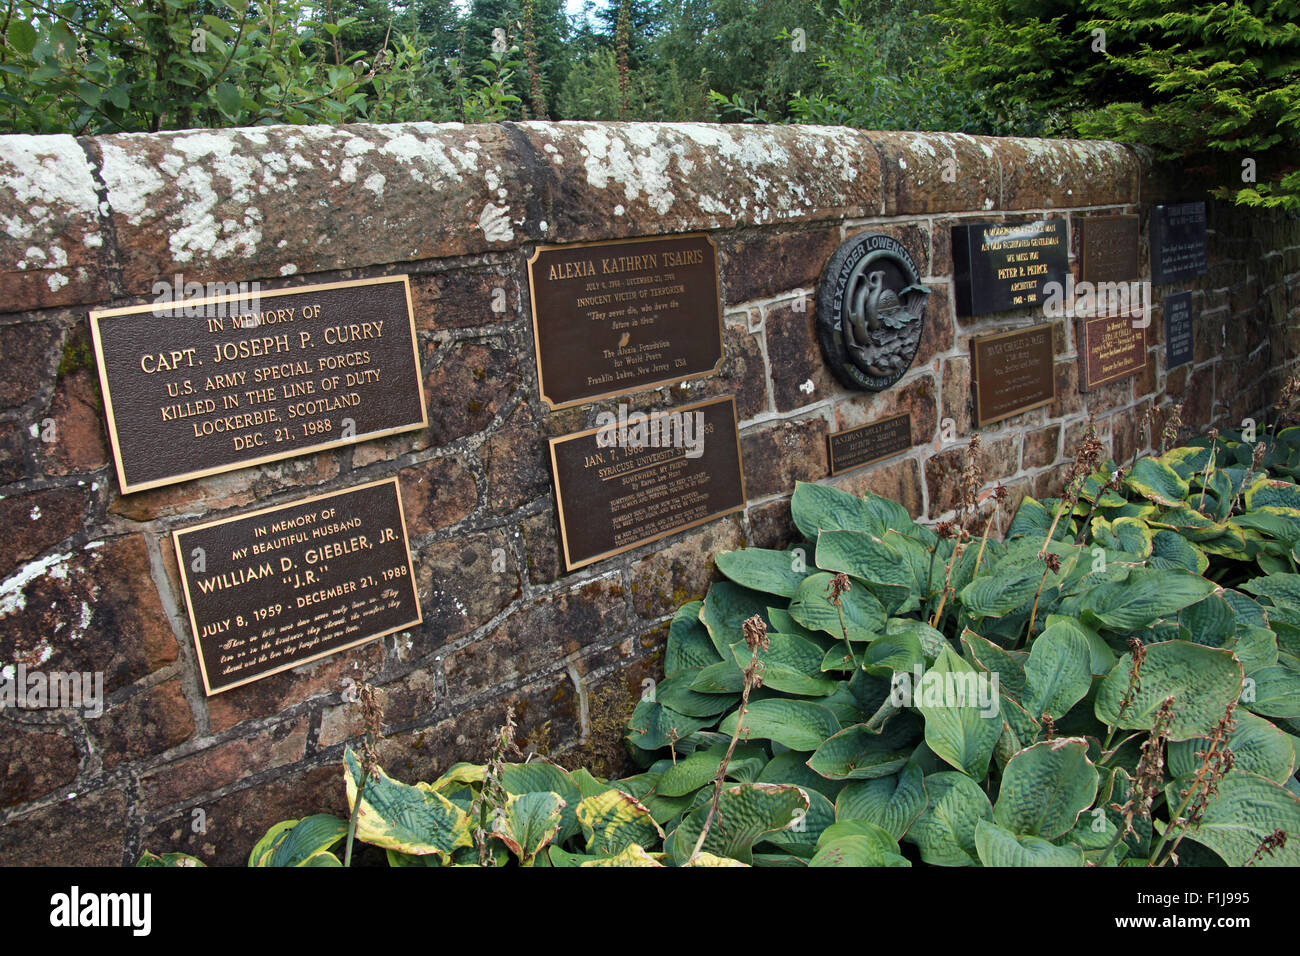 Lodge,Visitors,Centre,DLVC,Trust,Lockerbie,Memorial,Remembrance,Scotland,Victims,Pan,Am,PanAm,flight,103,bomb,bombing,terrorist,December,1988,attack,crash,dead,site,21/12/1988,270,victims,Scottish,Town,conspiracy,blast,Tundergarth,Room,garden,of,Dryfesdale,Cemetery,news,Cultural,New York,GoTonySmith,Lodge,Visitors,Centre,DLVC,Trust,Lockerbie,Memorial,Scotland,Victims,Pan,Am,PanAm,flight,103,bomb,bombing,terrorist,December,1988,attack,crash,dead,site,21/12/1988,270,victims,Scottish,Town,conspiracy,blast,Tundergarth,Room,garden,of,Dryfesdale,Cemetery,news,Cultural,understanding,remembering,innocent,transatlantic,Frankfurt,Detroit,Libyan,Libya,Colonel Muammar Gaddafi,civil,case,compensation,terrorism,PA103,30,30years,years,Syracuse,University,SU,family,collections,Story,Archive,Archives,40,35,Timeline,saga,disaster,air,Scholars,program,programs,remembrance,Clipper Maid of the Seas,N739PA,Boeing,727,plane,aircraft,Scotland,UK,United Kingdom,GB,Great Britain,resting,place,Buy Pictures of,Buy Images Of,New York,al megrahi,30 Years